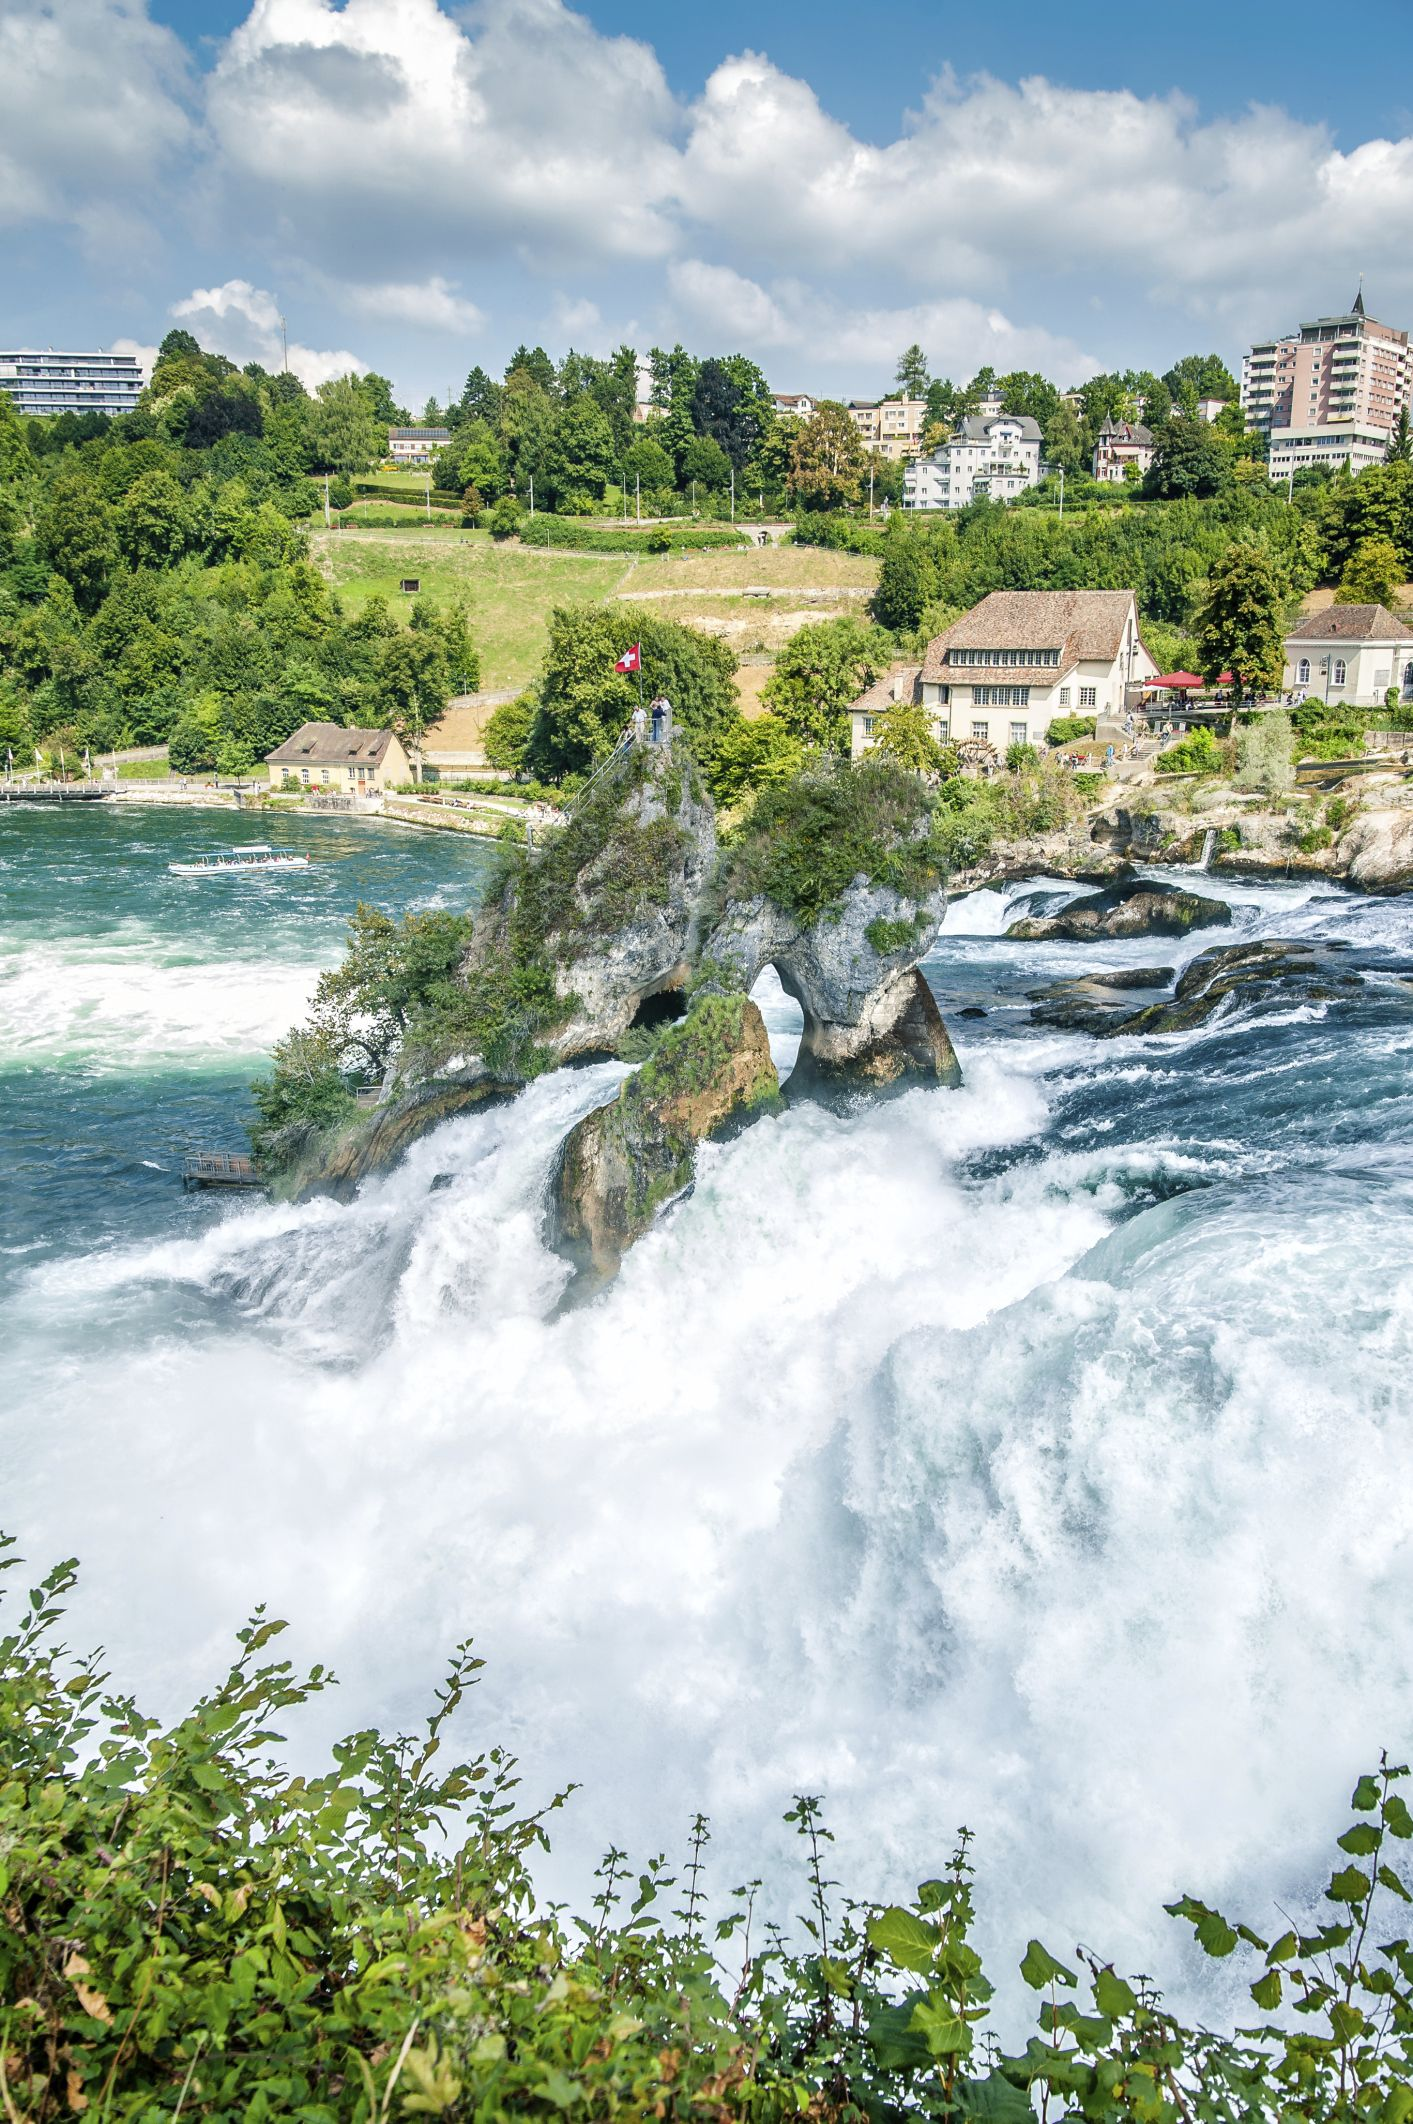 The Rhine Falls, Europe's largest water falls, are a major tourist attraction in northern Switzerland. Situated at Neuhausen am Rheinfall, near the city of Schaffhausen, they are easily reached from Winterthur in 25 minutes (by train) and from Zurich in one hour. #switzerlandtravel